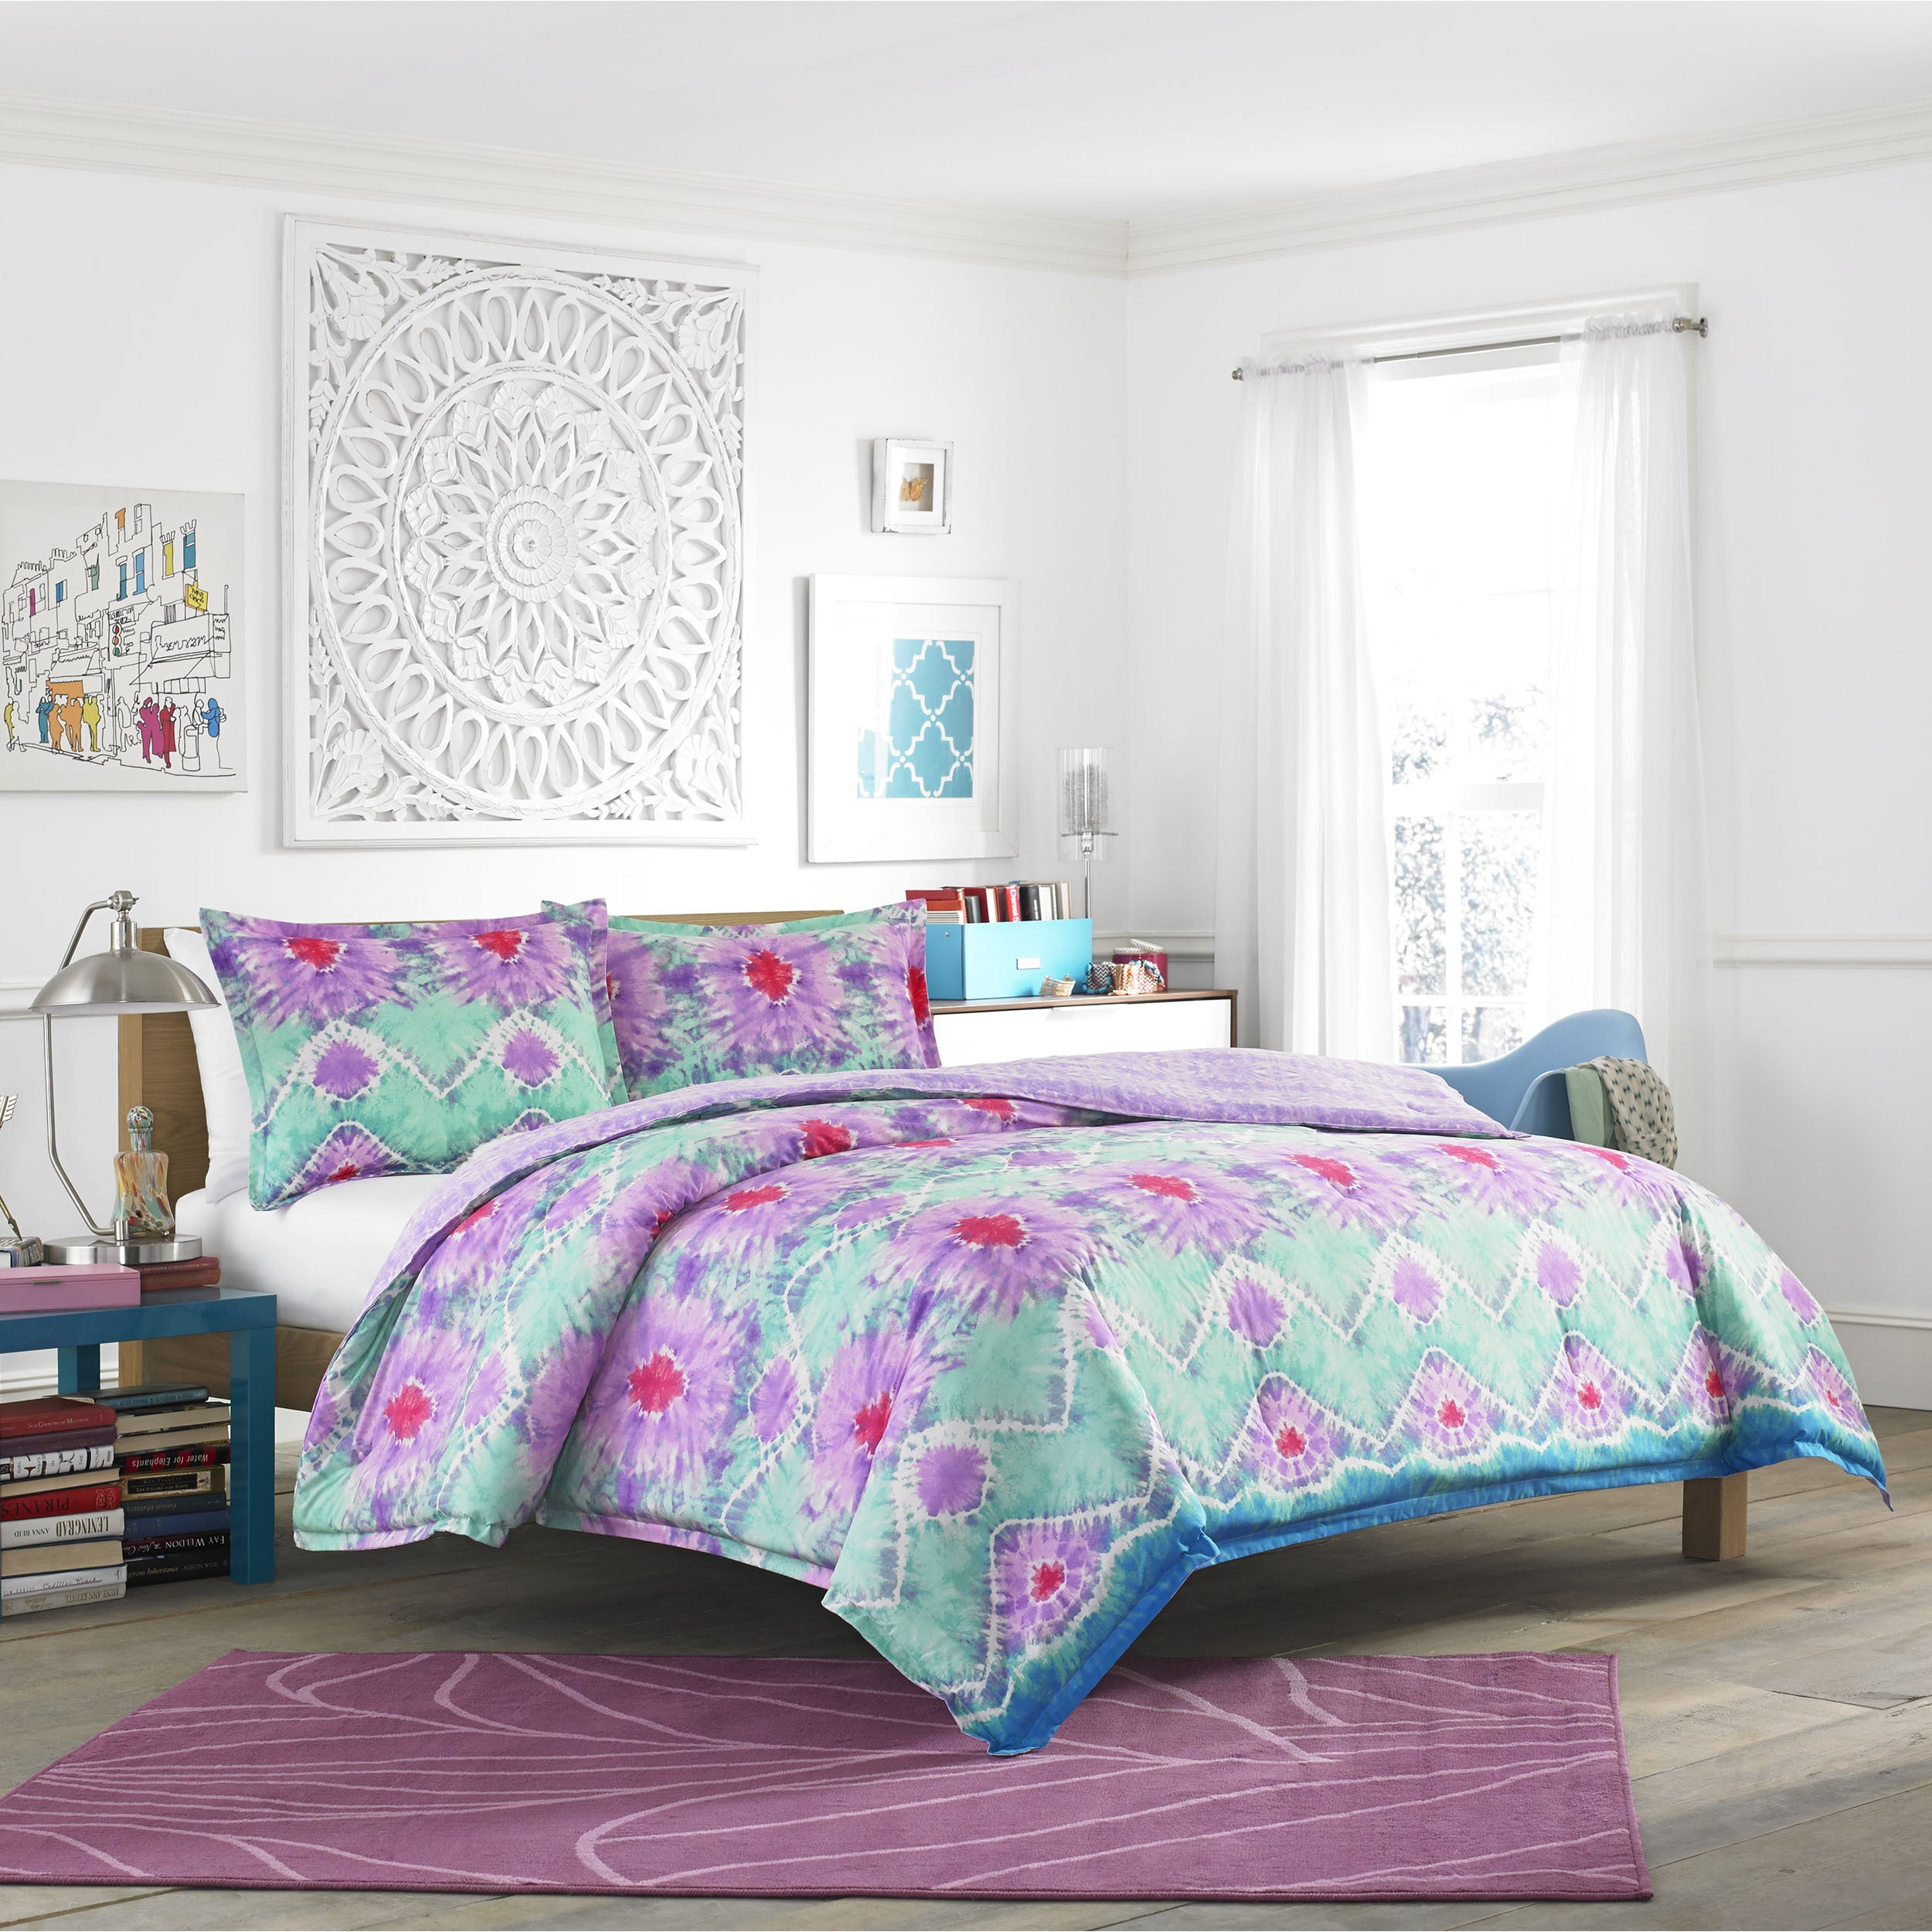 Shop Teen Vogue To Dye For 3-piece Comforter Set - Free Shipping ...